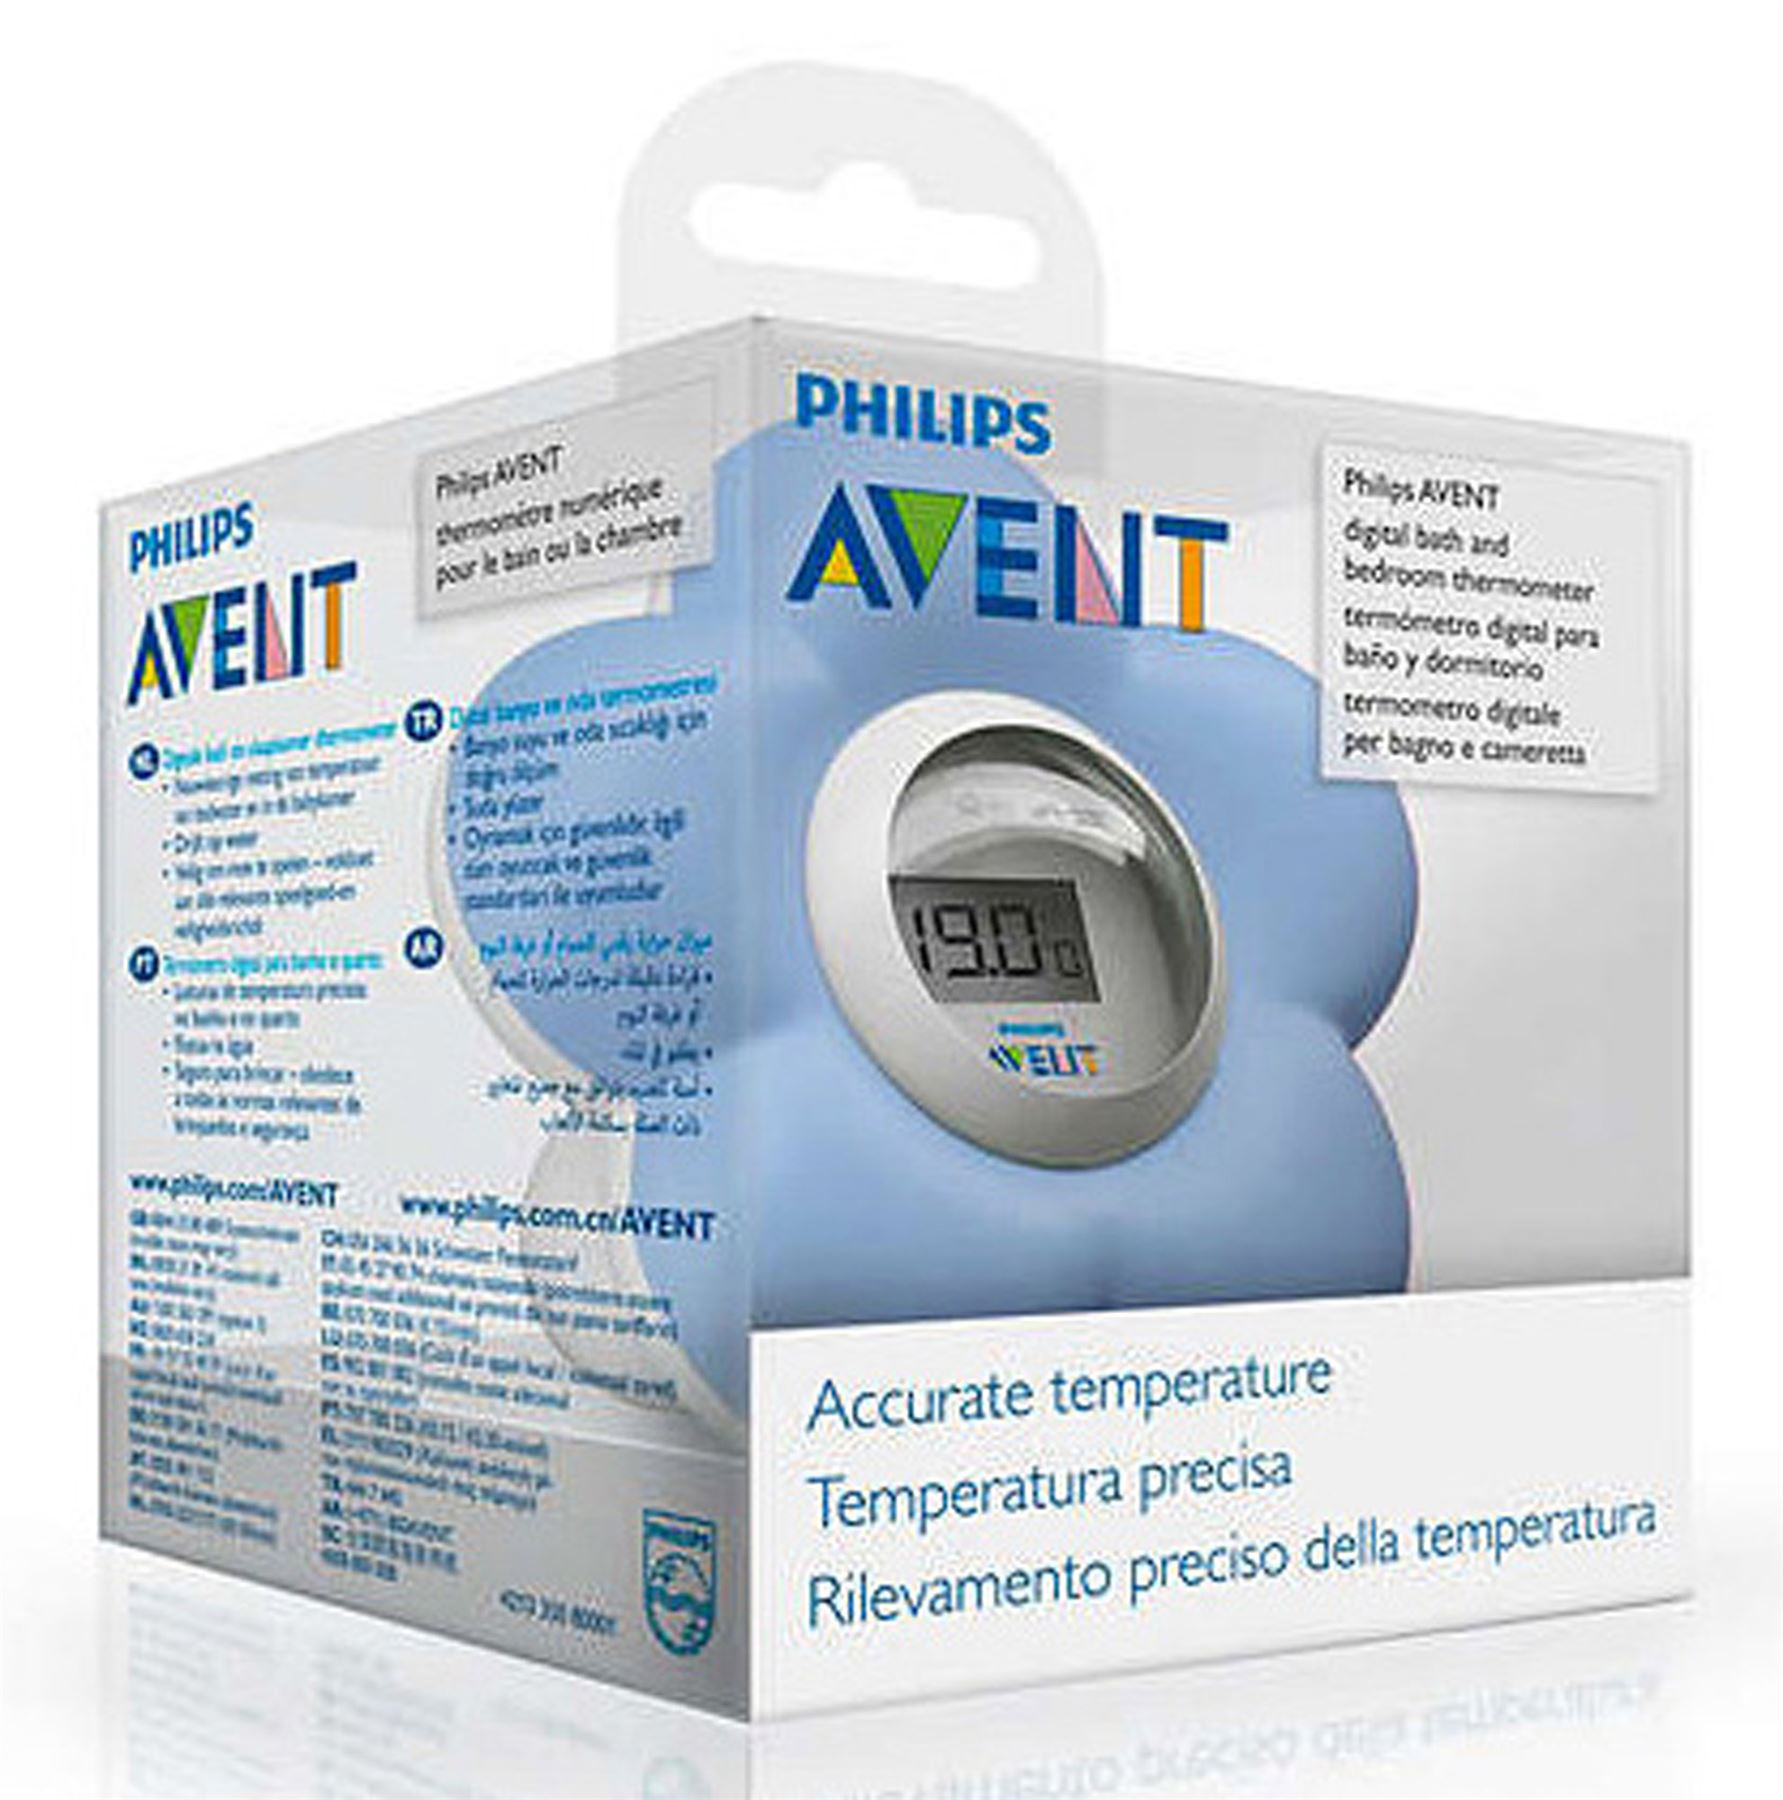 Avent BLUE BATH//ROOM THERMOMETER Baby Safety Thermometers BN